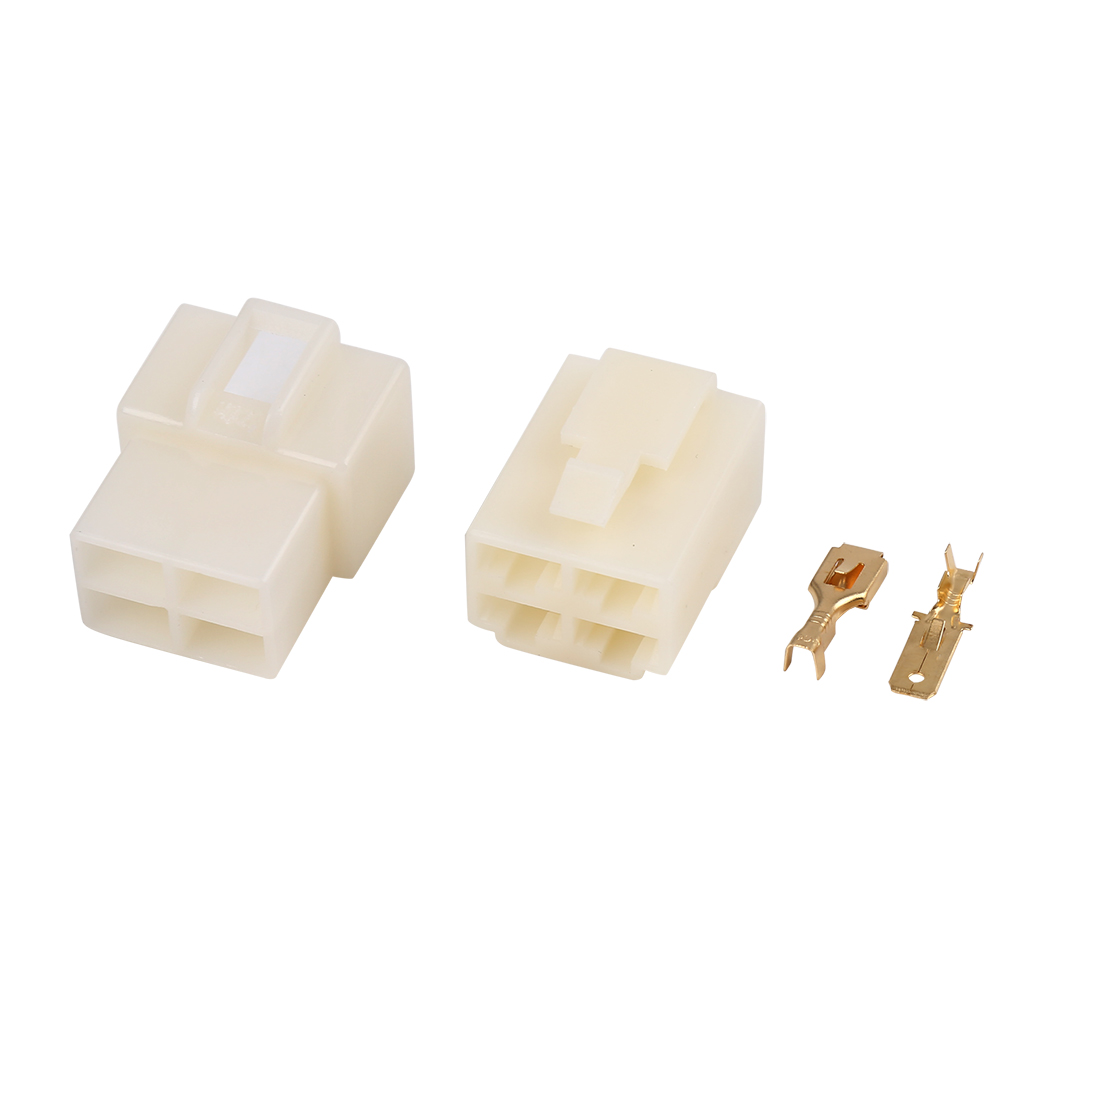 10 Sets 4 Pin Car Electrical Wire Connector Male Female Housing Terminal 6.3mm